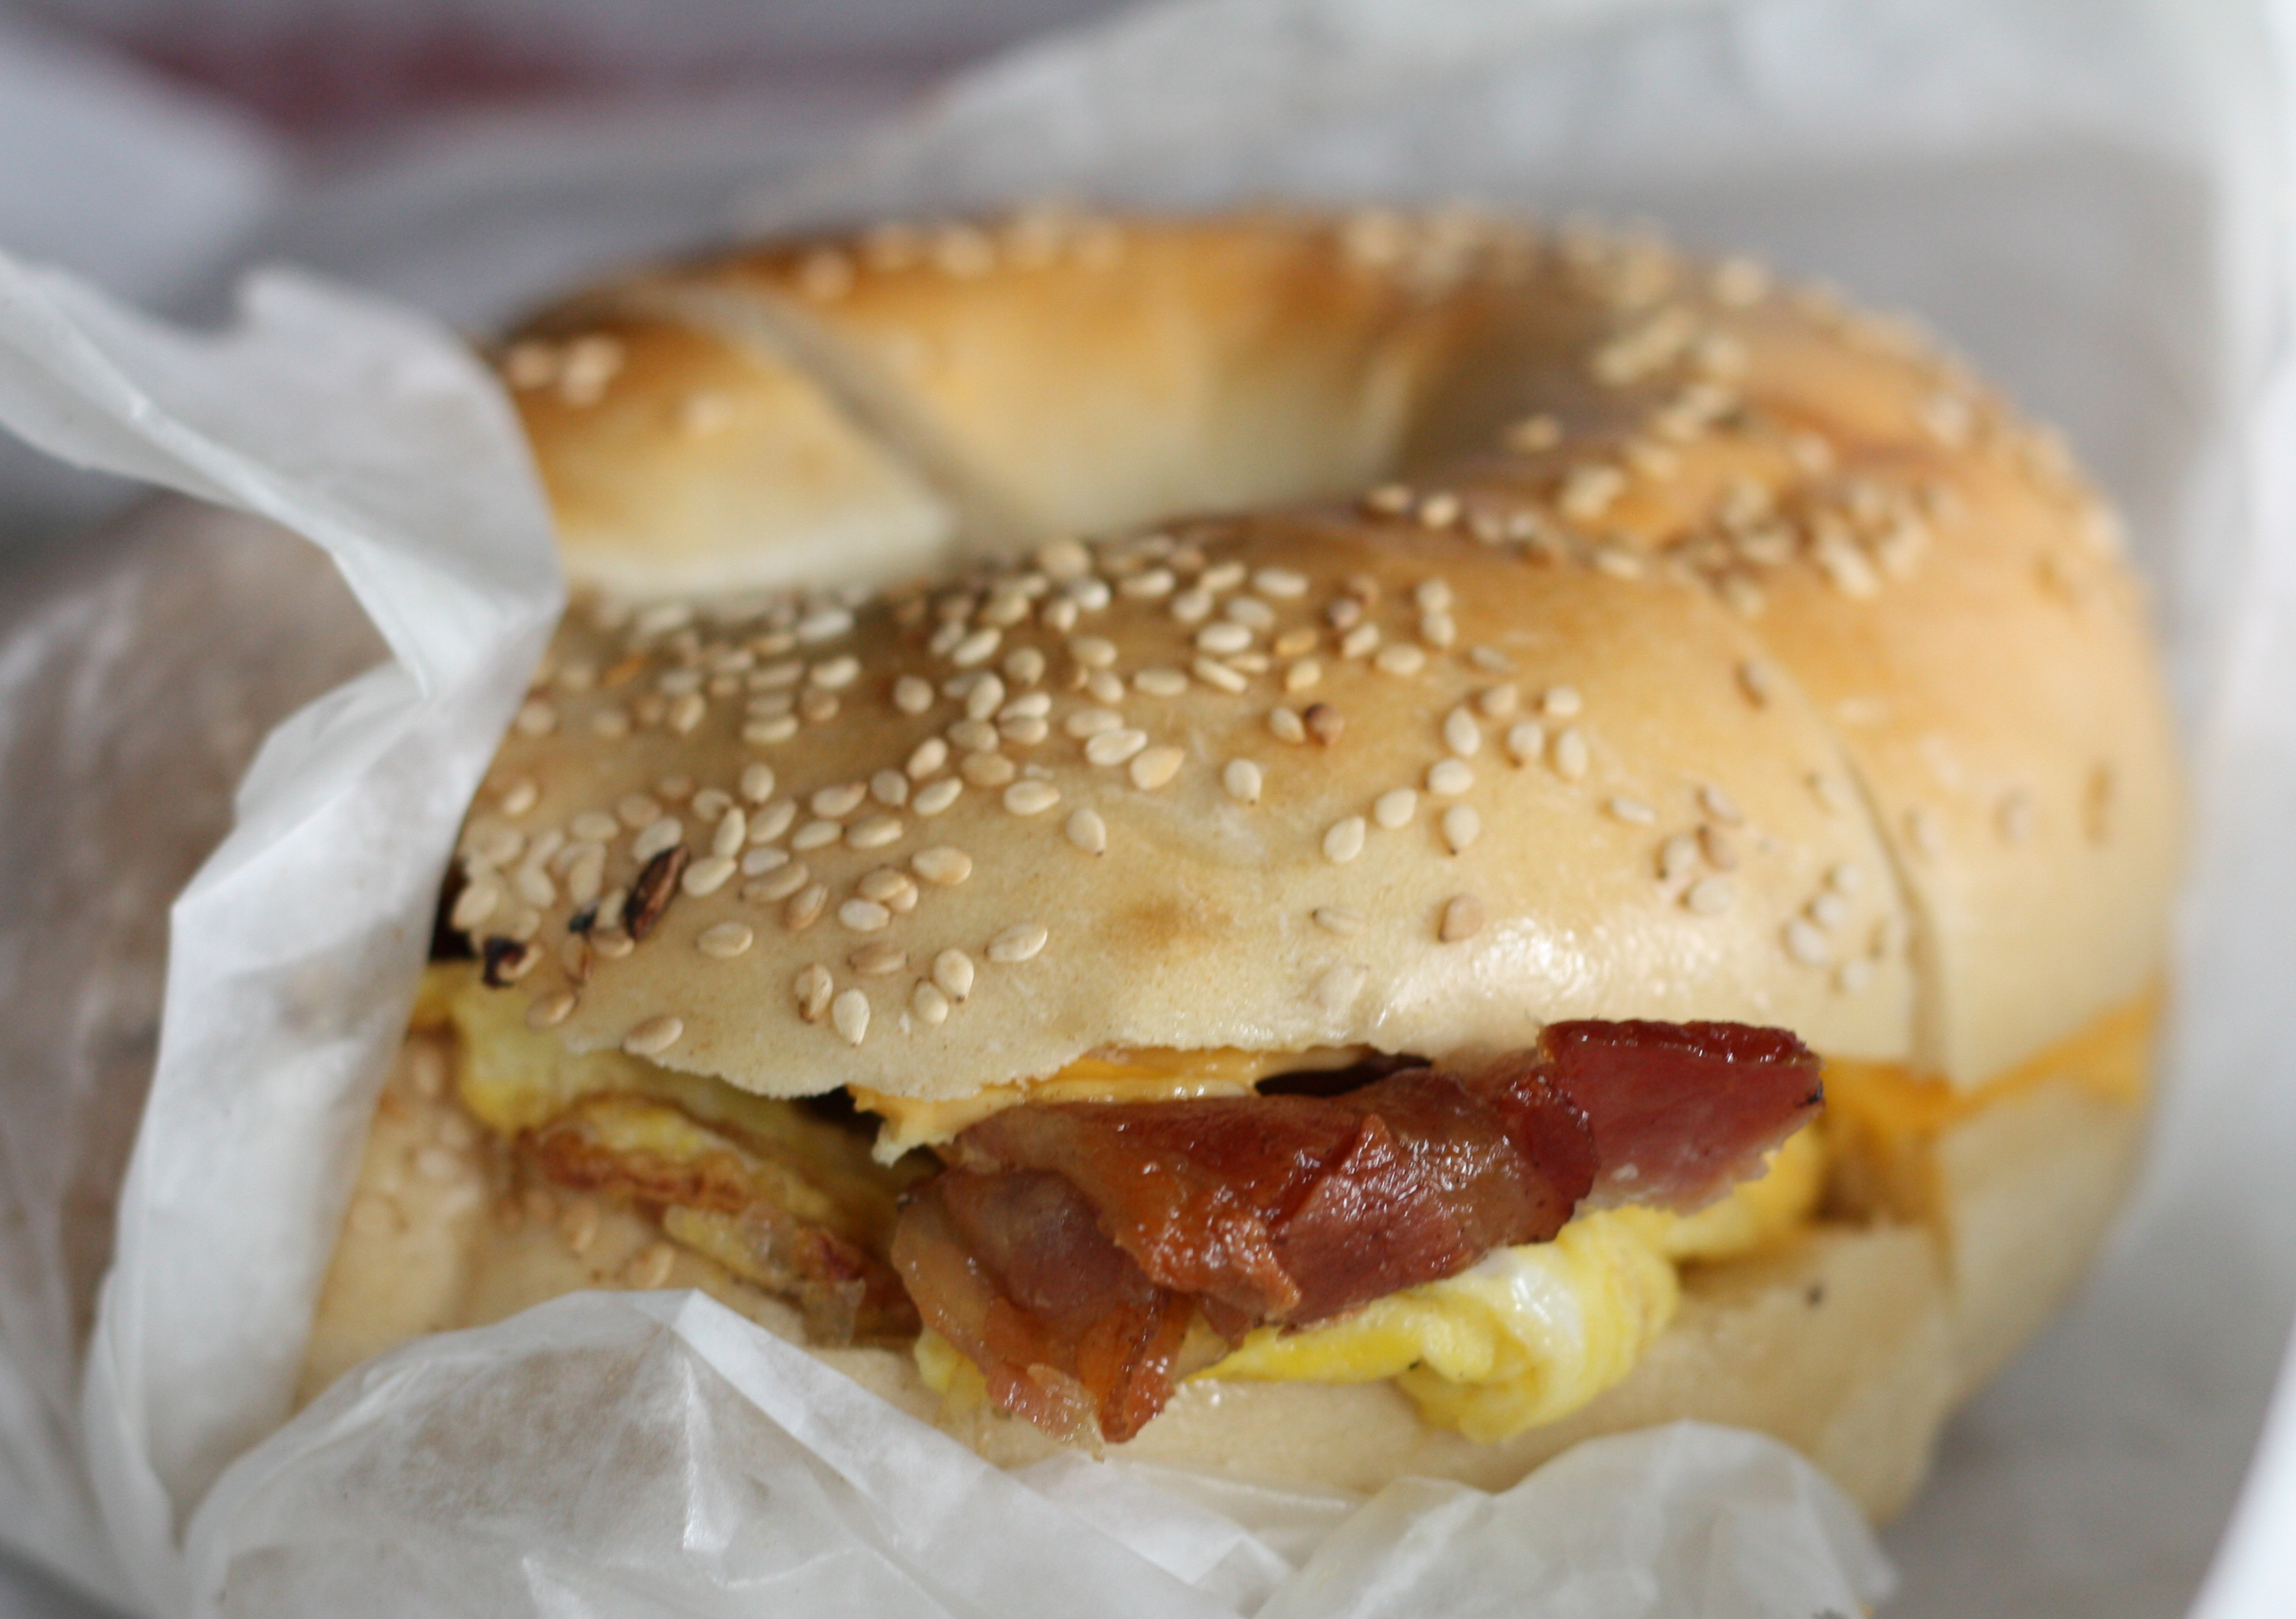 New York Bagel Egg Sandwich